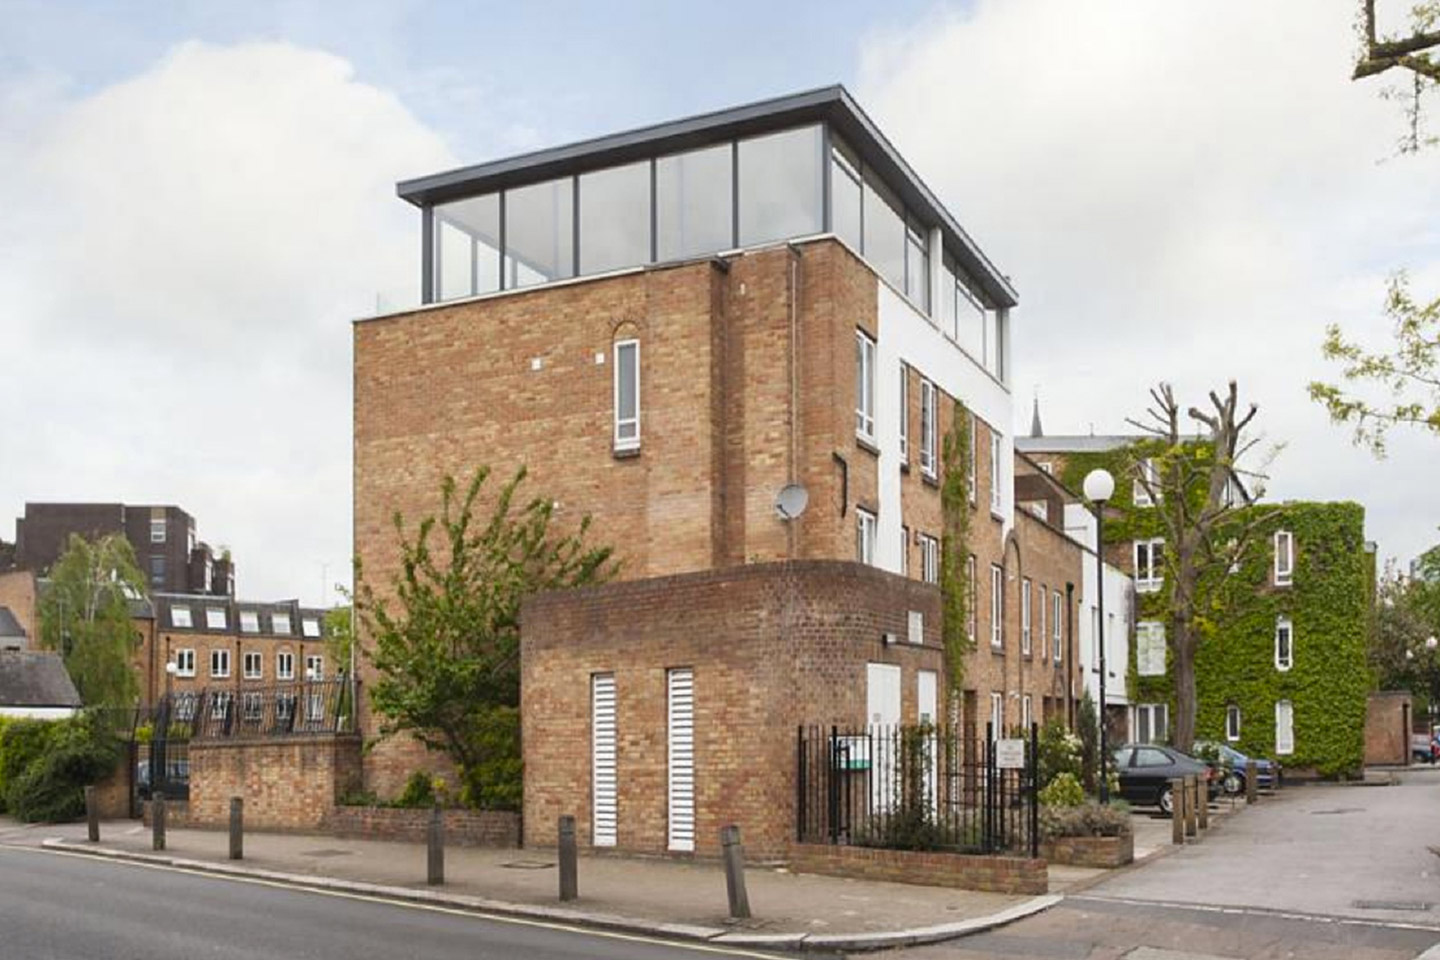 Air rights development example in Wandsworth